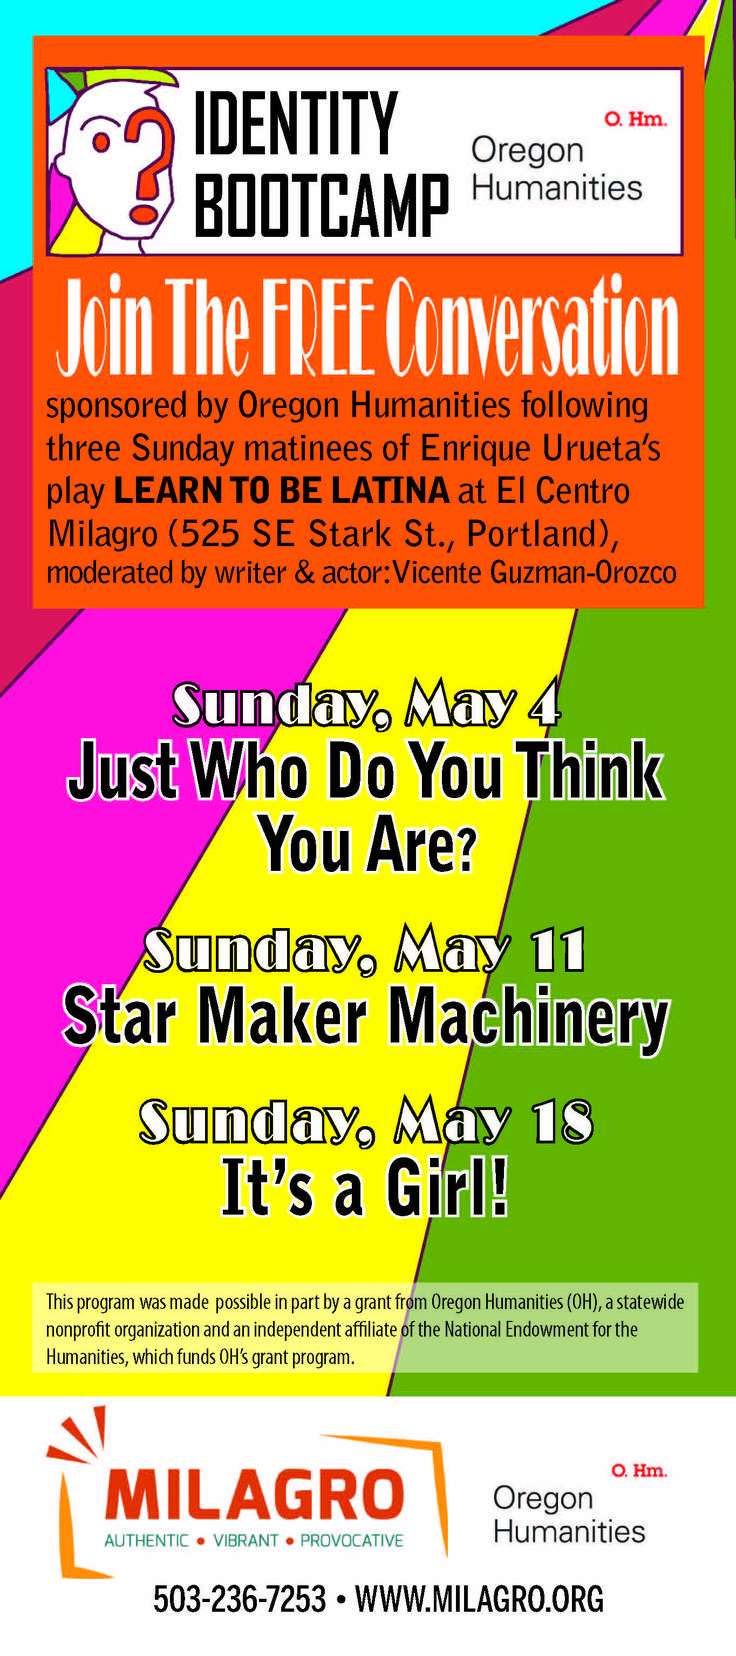 Learn to be Latina: Identity Bootcamp starts this weekend with panelist: Enrique Urueta, Learn to be Latina playwright; Brenda IvelisseAssociate Dean of Students at Portland Community Colleger-Rock Creek and Victor L. Cazares founding member of New Theatre House. Join us! is free.